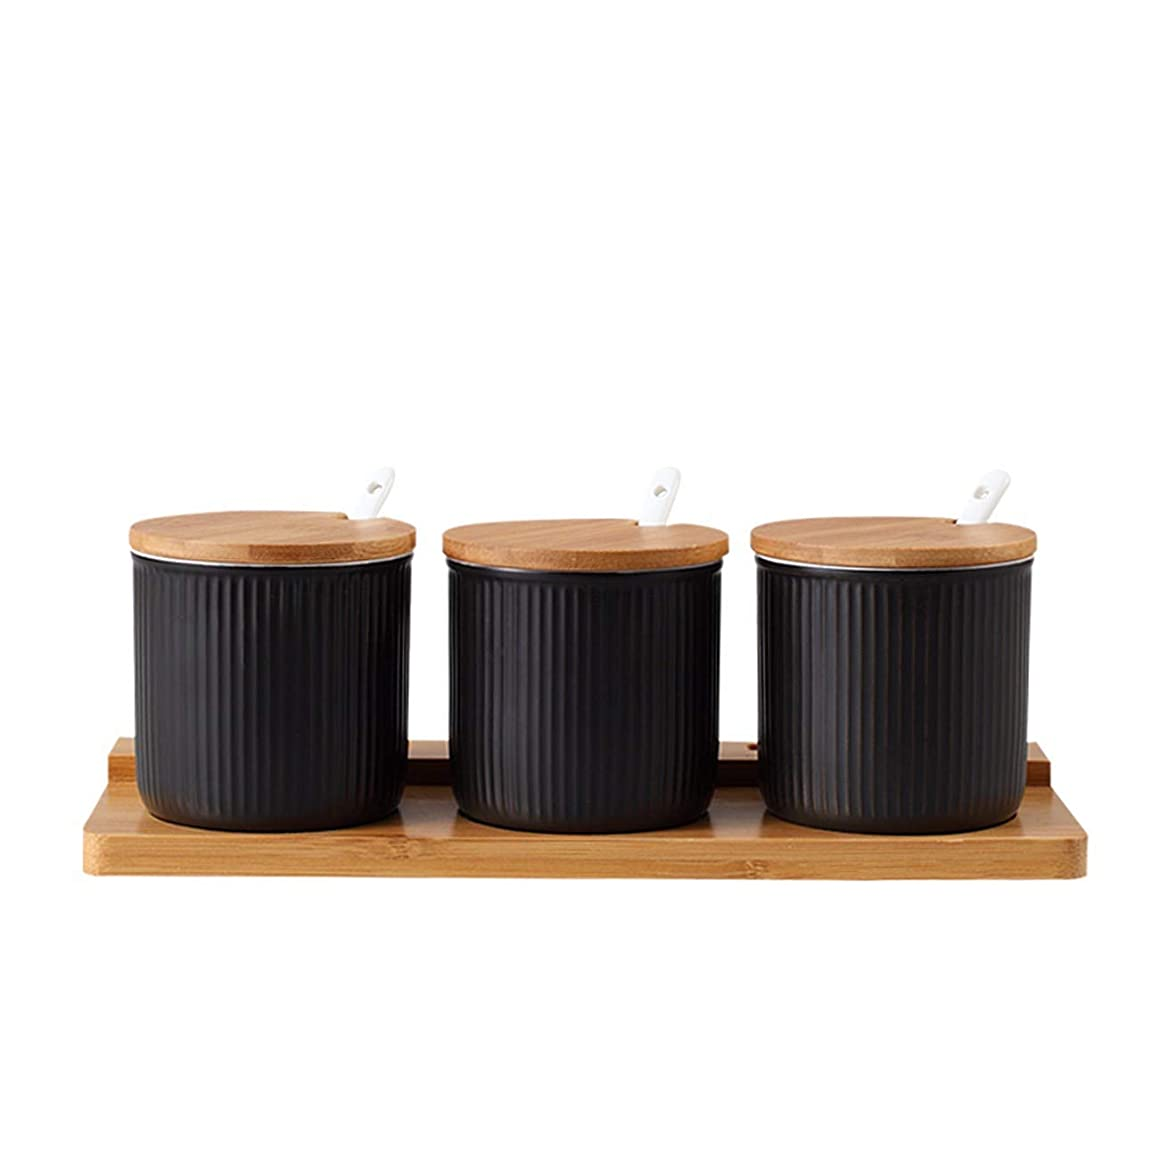 QPGGP-Condiment Yaguang ceramic condiment pot household condiment box set condiment bottle condiment pot salt pot three sets,E